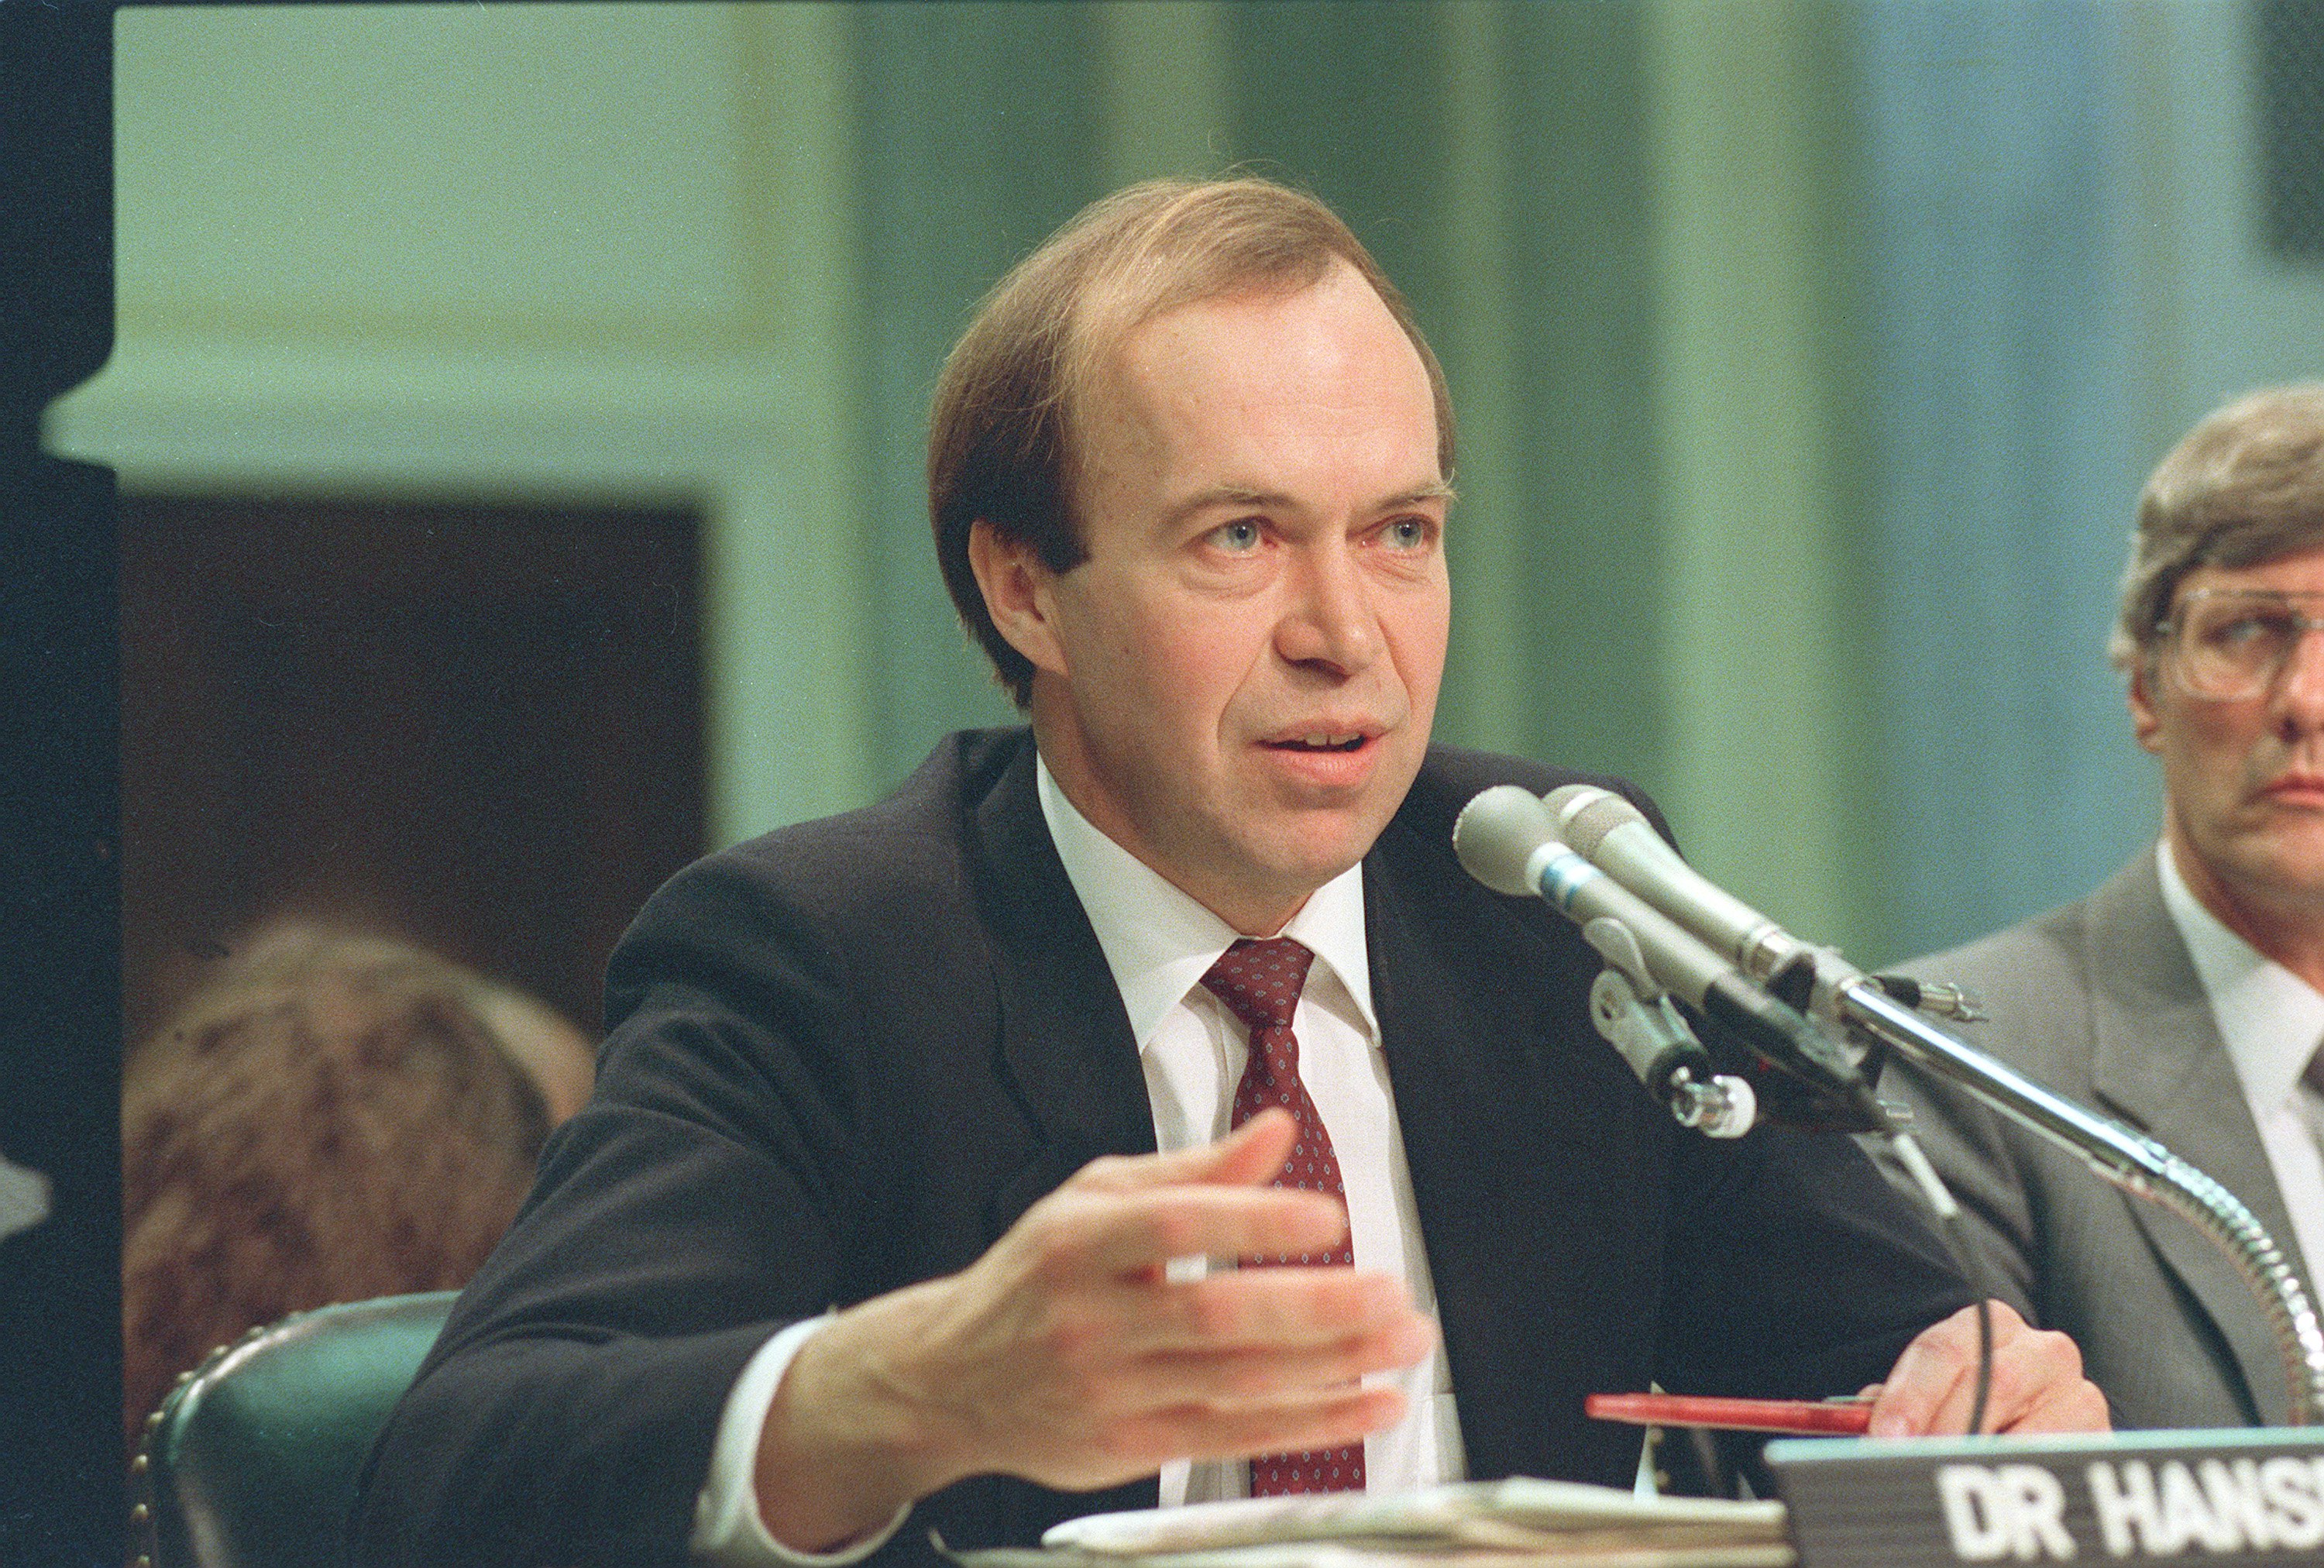 James Hansen testifying to Congress in 1988 (AP Photo/Dennis Cook)